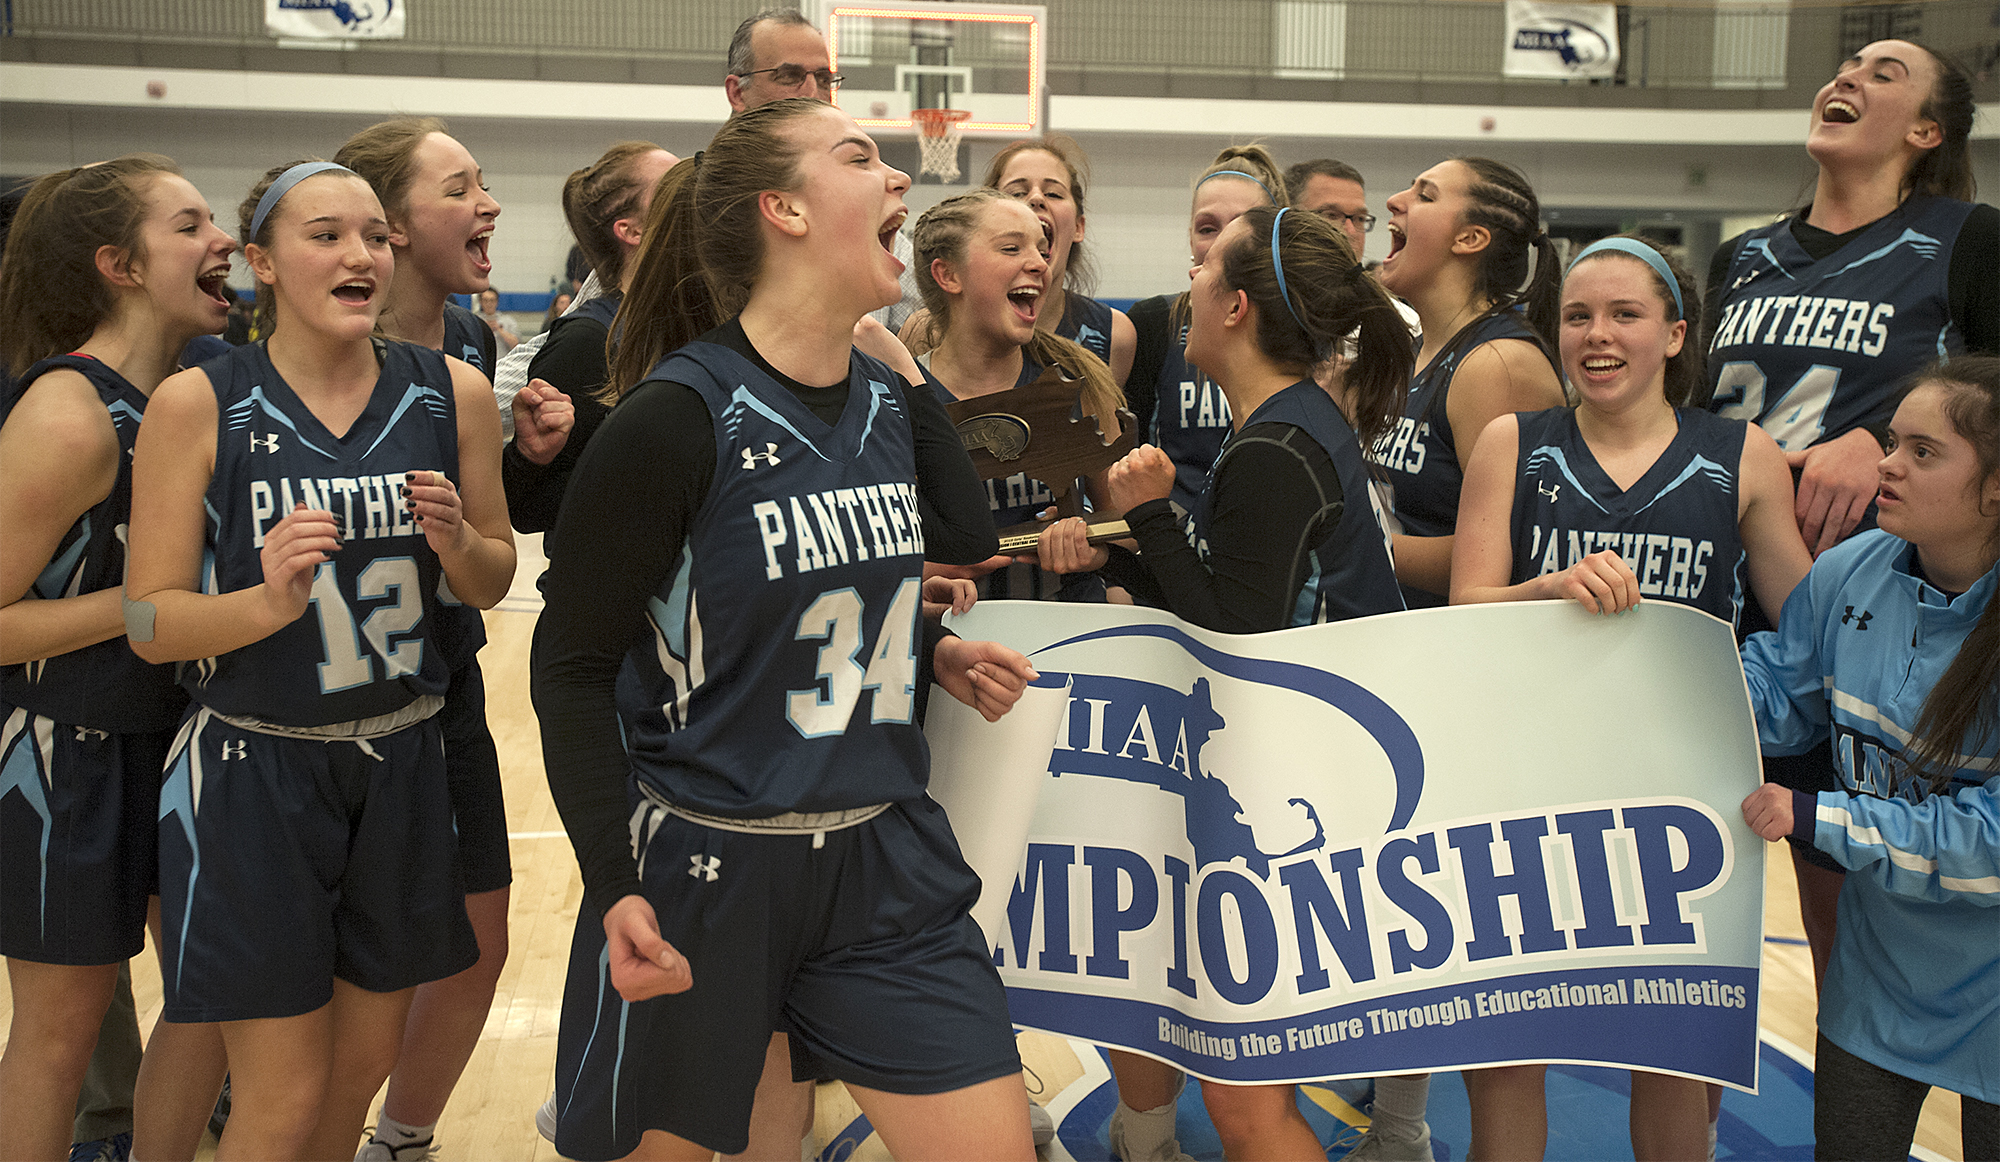 3/8/19-- WORCESTER-- Franklin's Megan O'Connell (#34), who scored the game winning put-back at the buzzer, screams after defeating Wachusett in the Central Mass. Div. 1 championship at Worcester State University Friday night, 61-60.   [Daily News and Wicked Local Staff Photo/Art Illman]